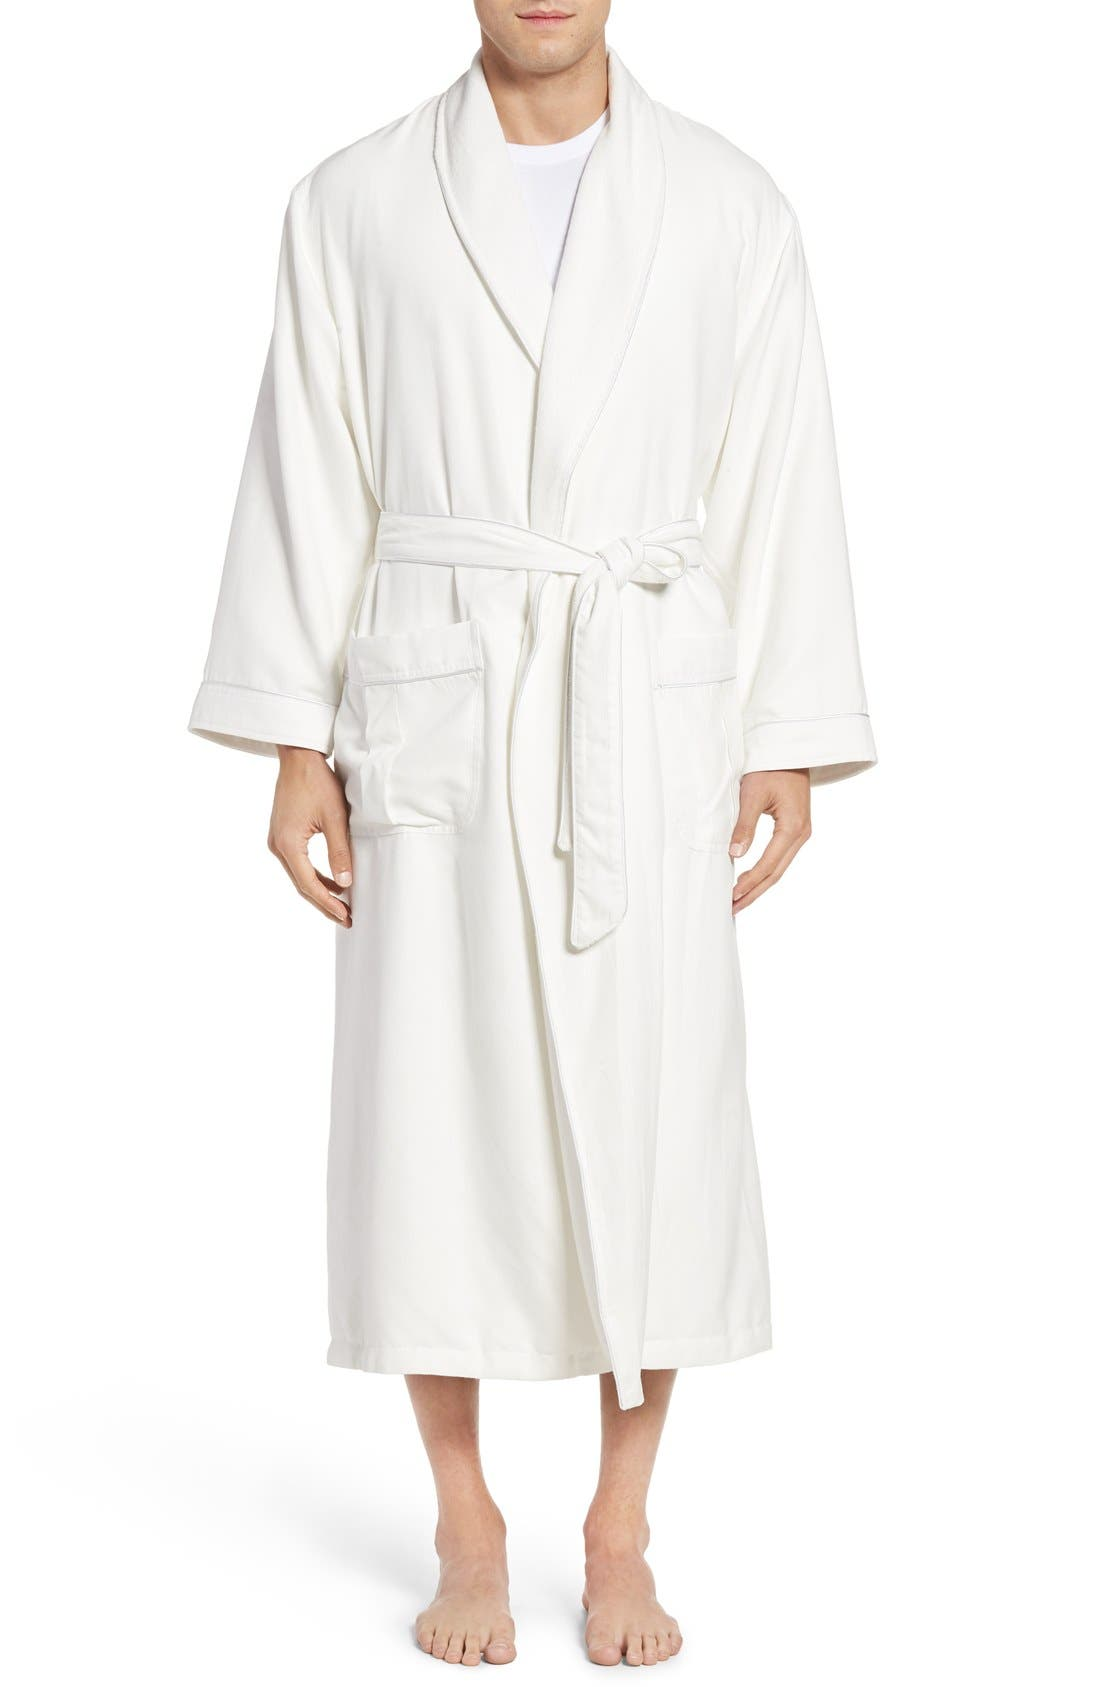 Majestic International Strathcona Microfiber Robe